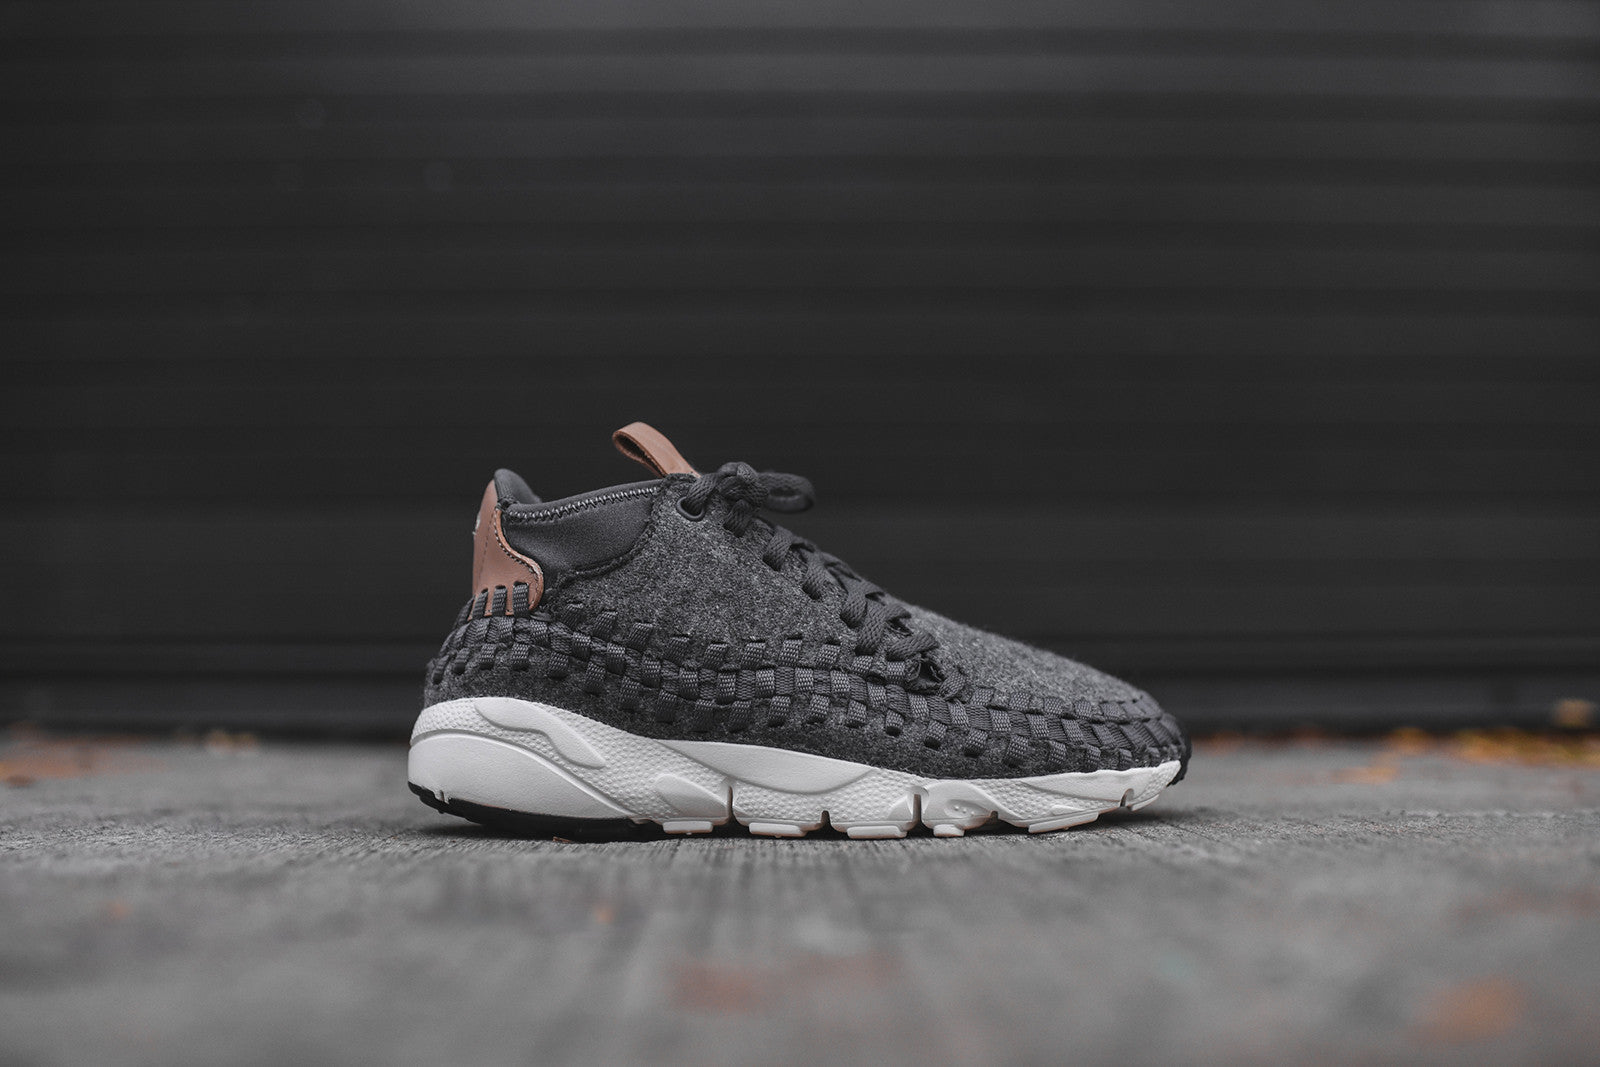 Nike Air Footscape Chukka SE - Dark Grey / Sail / Vachetta Tan